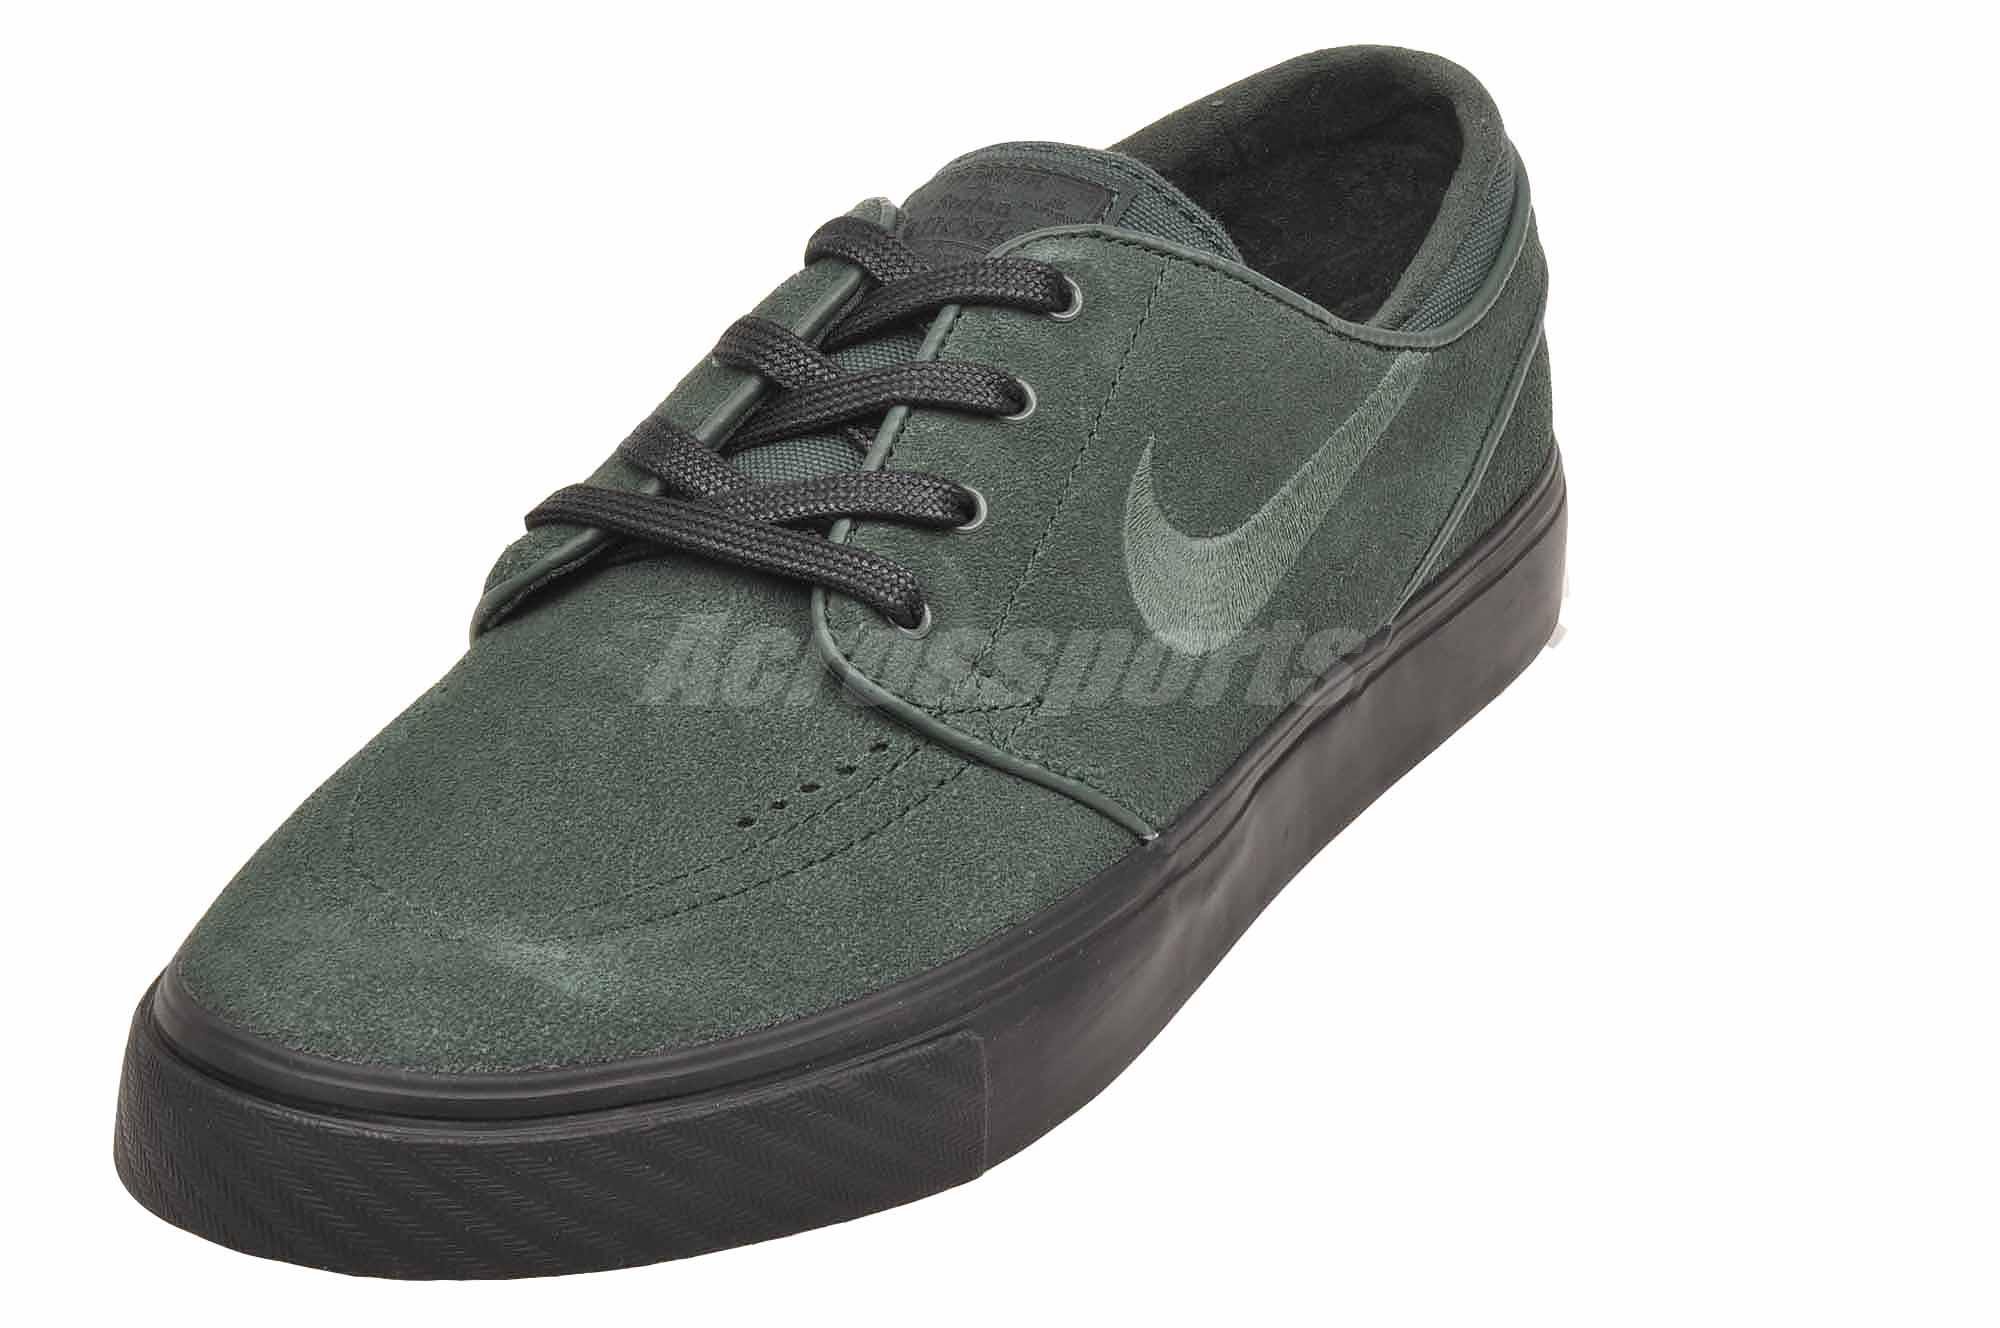 66699164f89f5 Nike Zoom Stefan Janoski Skate Boarding Mens SB Shoes Green 333824 ...